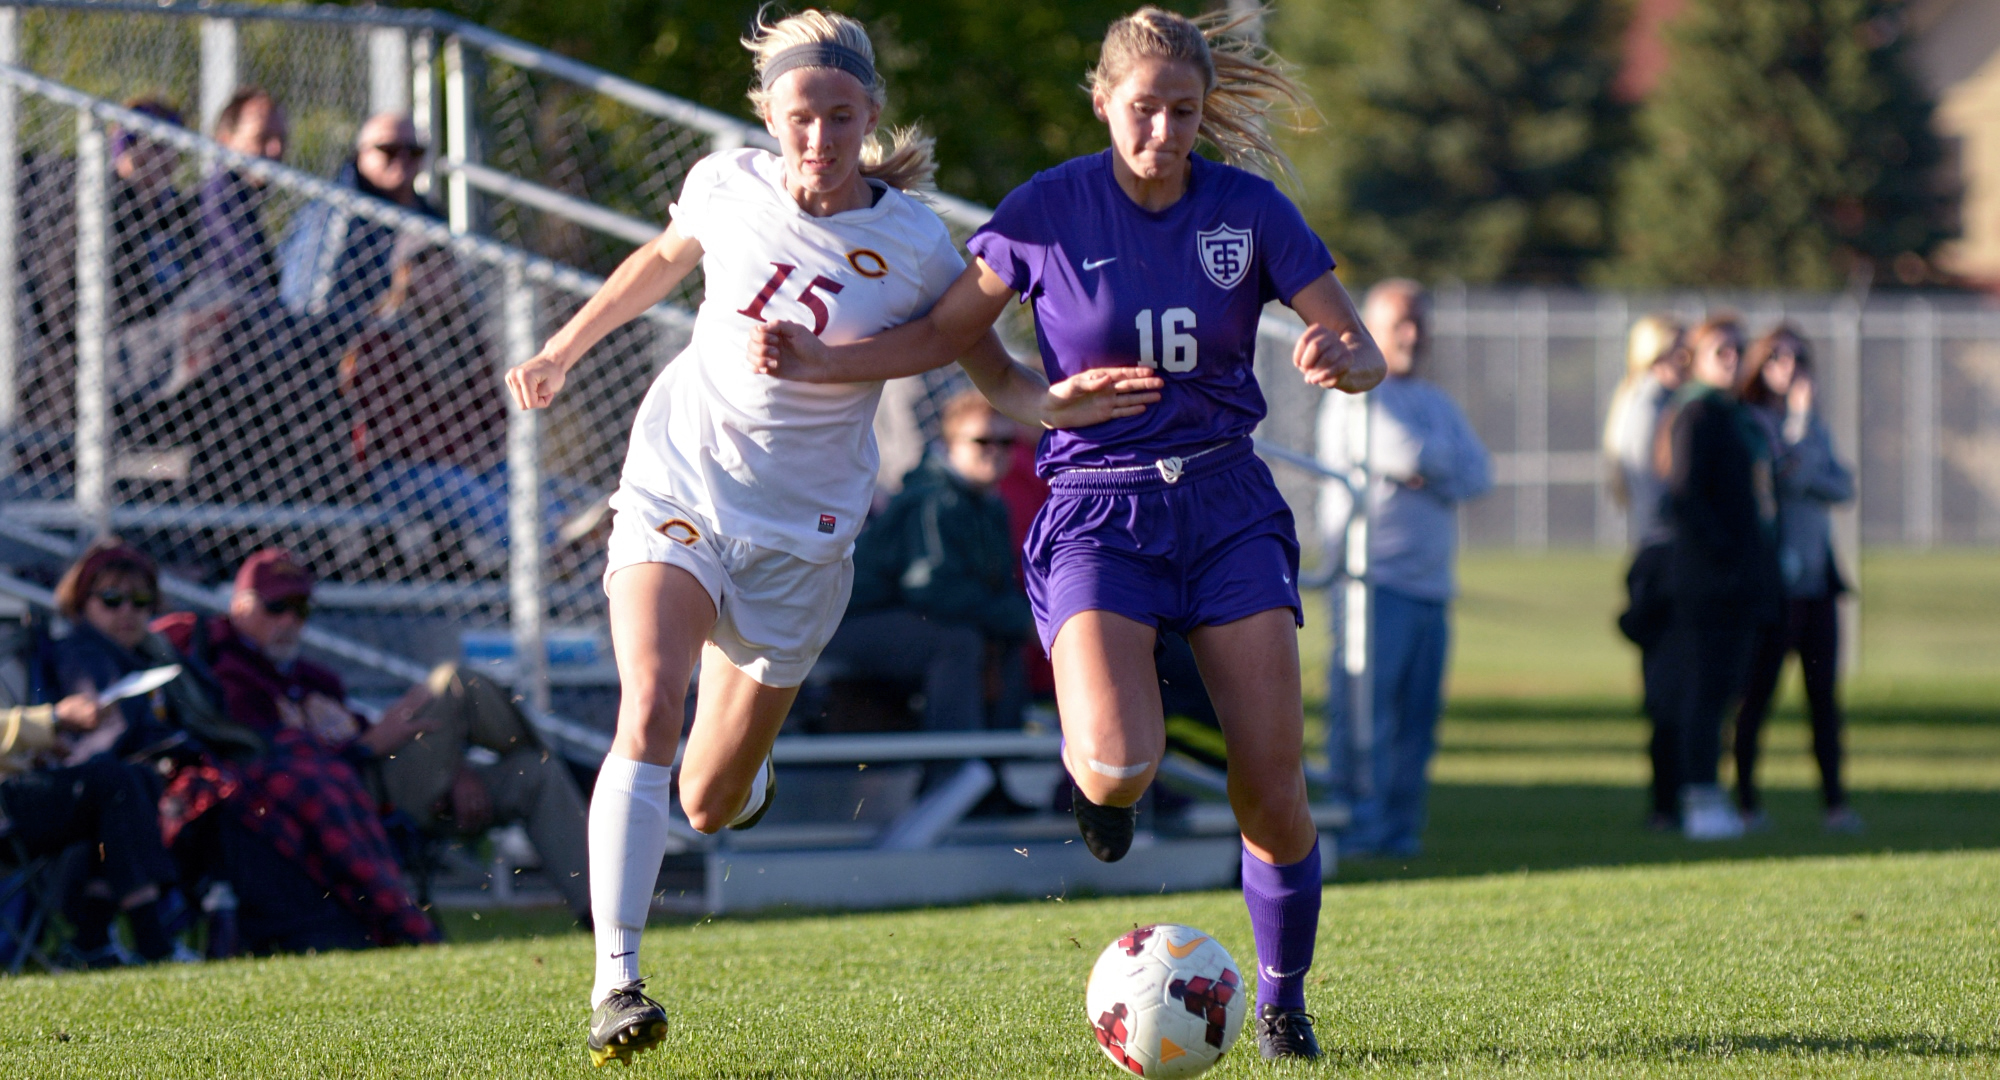 Senior Emily Payne battles for the ball on the right wing during the Cobbers' game with #14 St. Thomas. Payne scored her second goal in the last three games in the 2-1 loss.